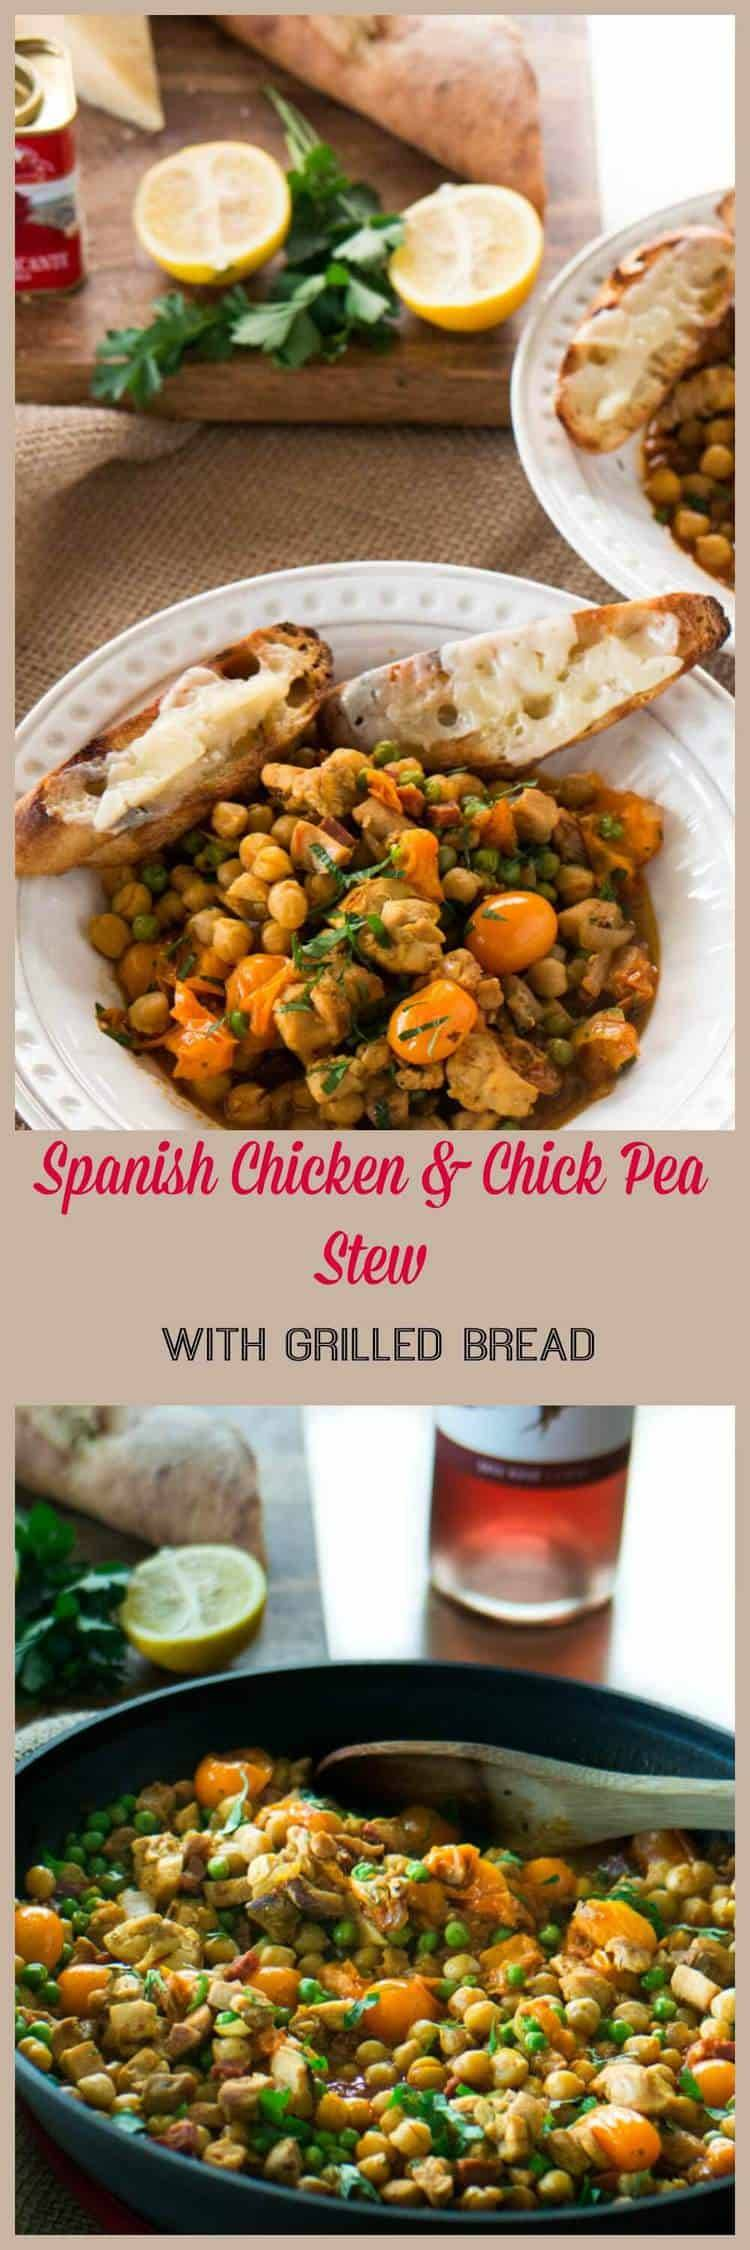 Spanish Style Chicken and Chick Pea Stew With Grilled Bread - Classic Spanish flavors - smoked paprika, saffron, garlic, sherry, parsley, tomatoes, chorizo - with chicken, chick peas, and grilled bread with manchego... On your table in 45 minutes or less!